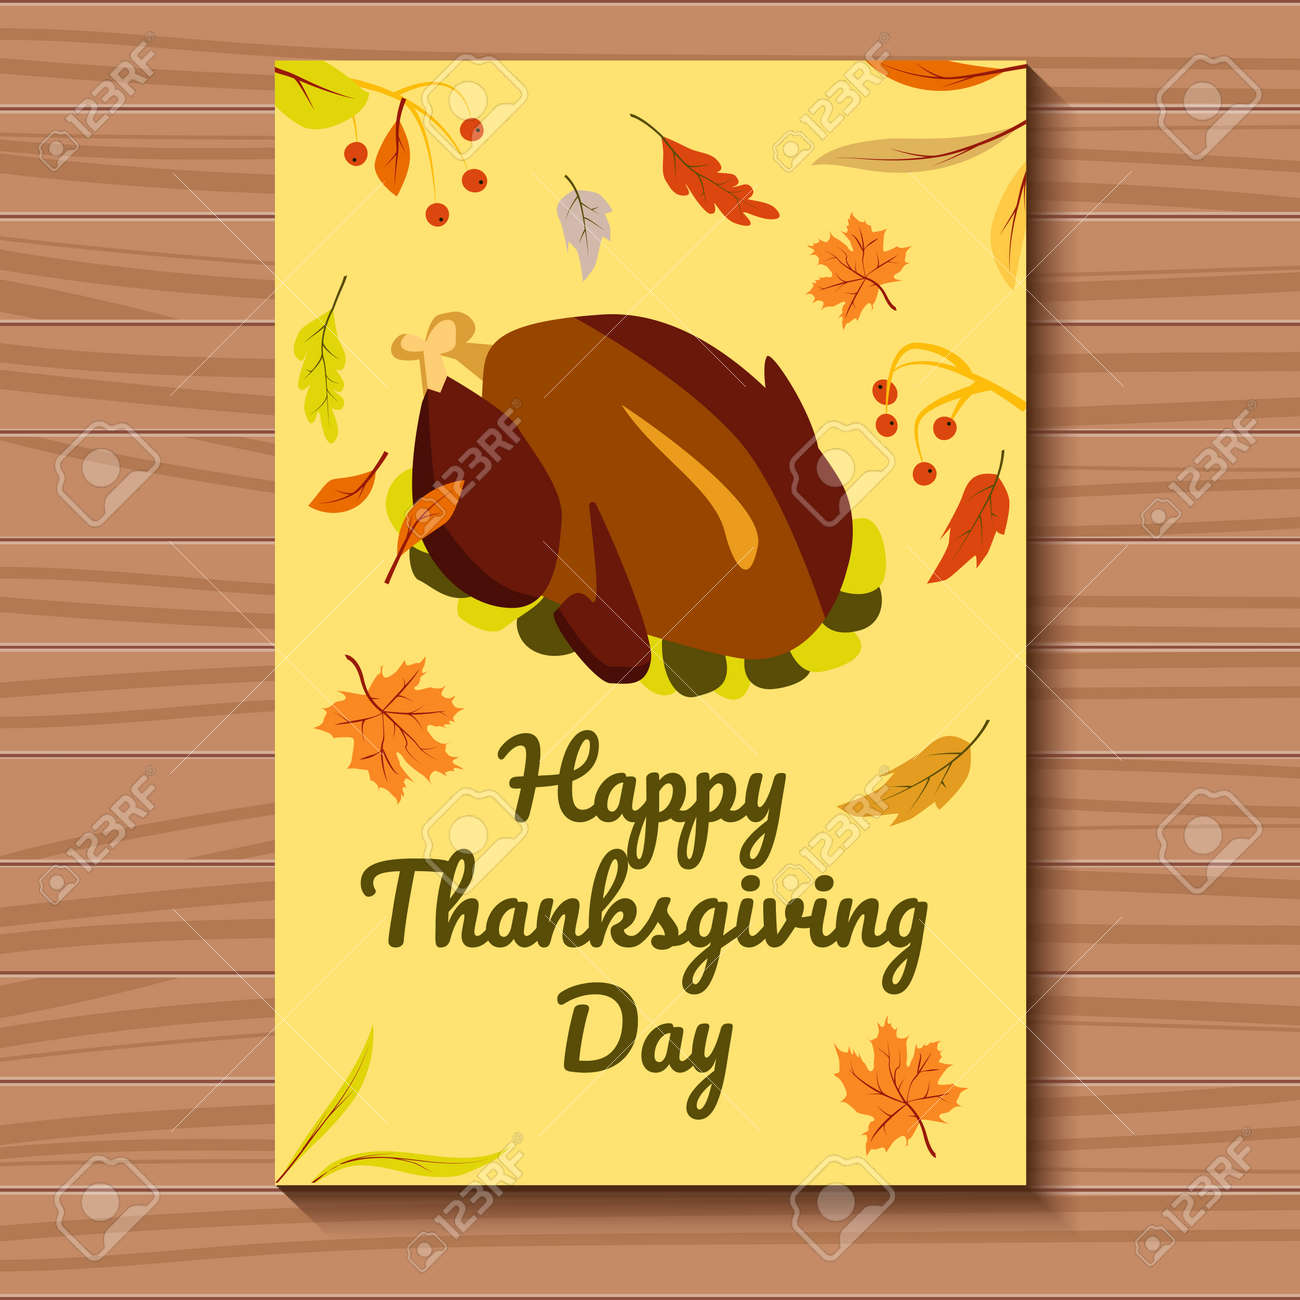 Bison Are Ready For Thanksgiving >> Card Yellow For Thanksgiving Day With A Ready Turkey And Autumn